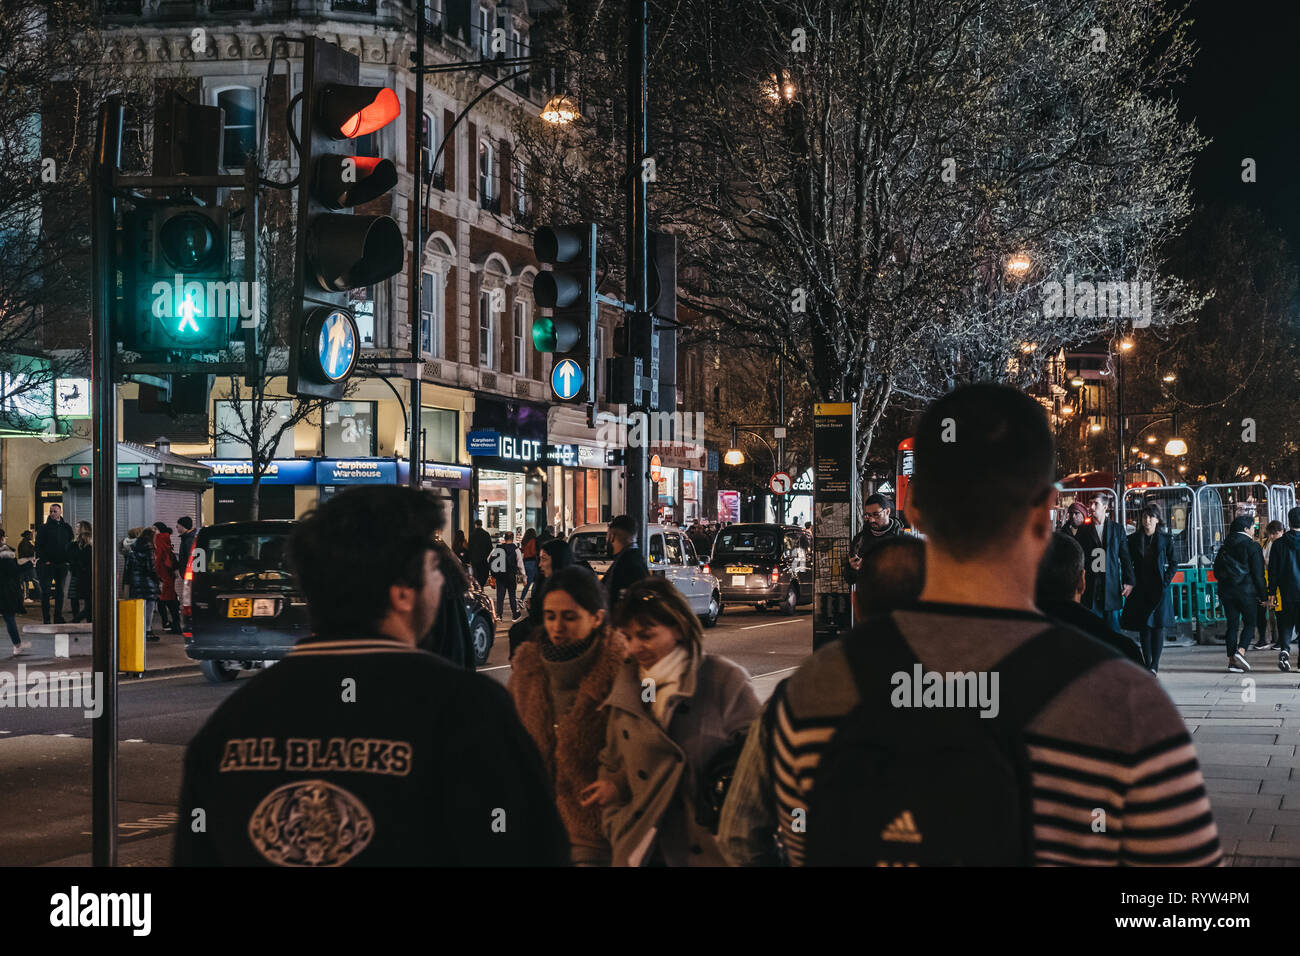 London, UK - March 9, 2019: People walking on Oxford Street, London, in the evening. Oxford street is one of the most famous shopping streets in Londo - Stock Image